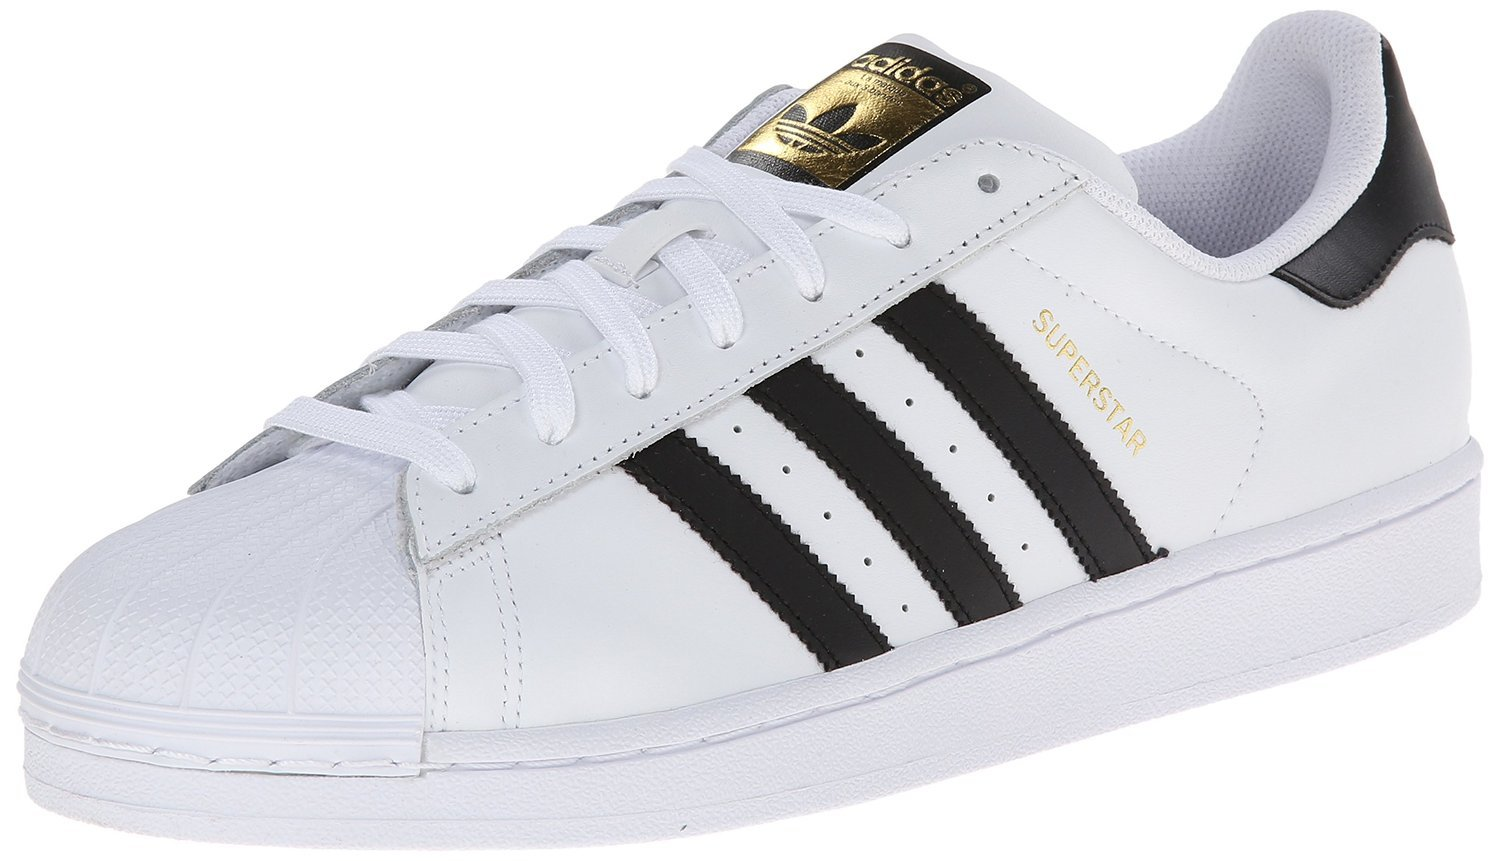 Adidas Kids Superstar J Sneakers White/Black C77154 | eBay